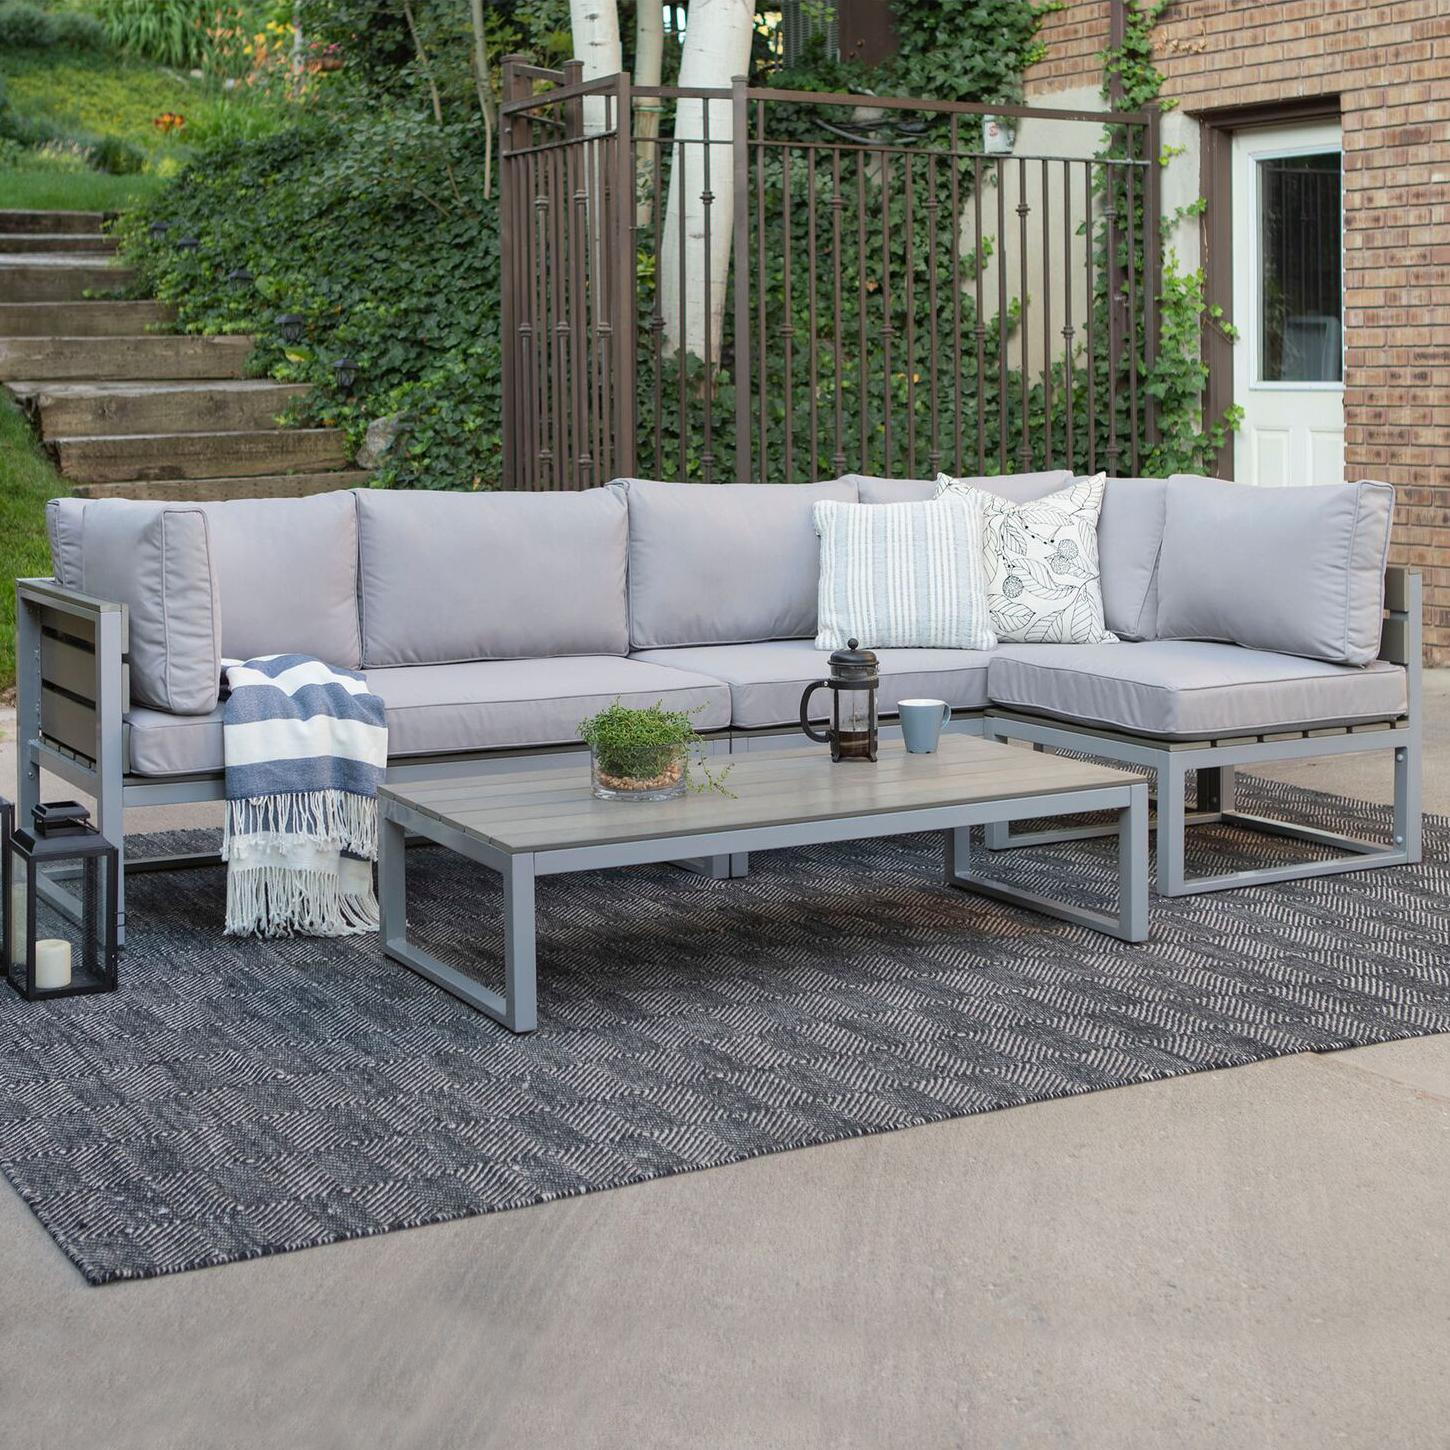 Walker Edison Boardwalk 4 Piece Aluminum Patio Sectional Set W/ Gray Cushions By - Oaw4csngy